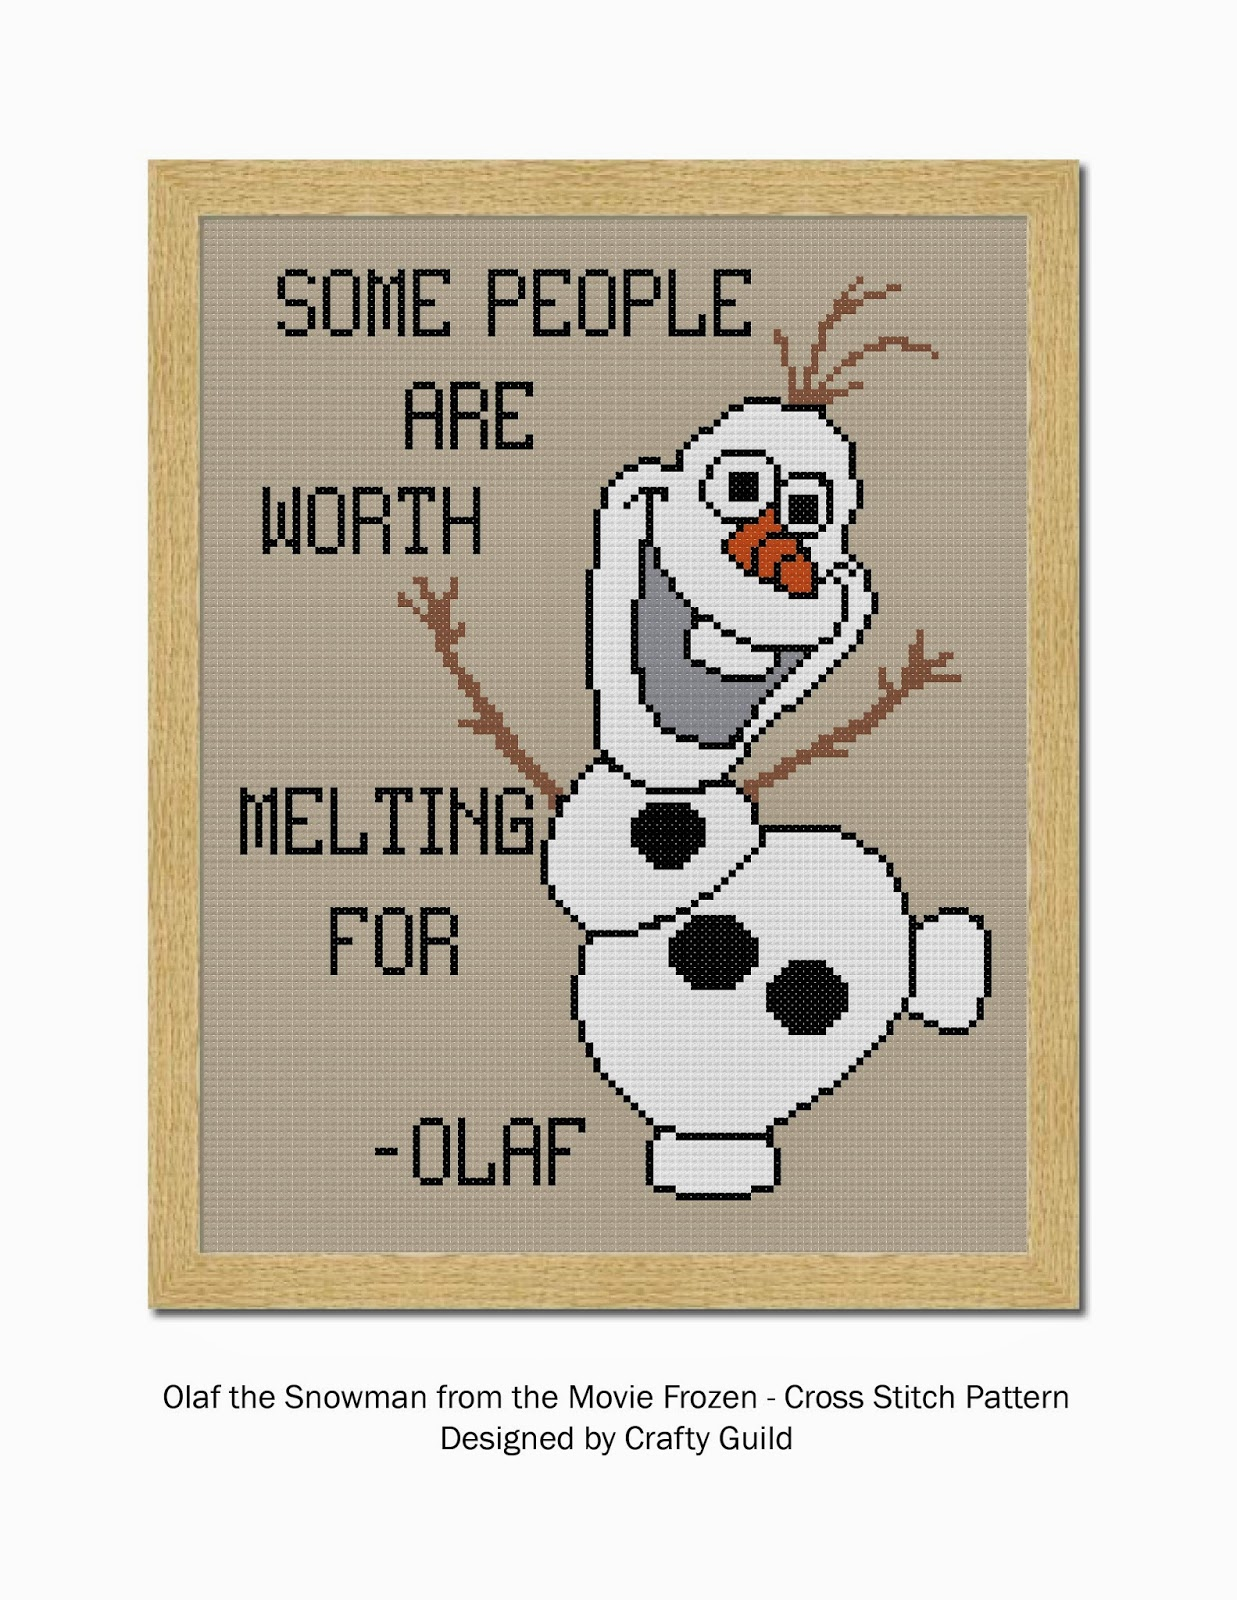 Olaf The Snowman Frozen Some People Are Worth Melting For It s summerOlaf The Snowman Melting